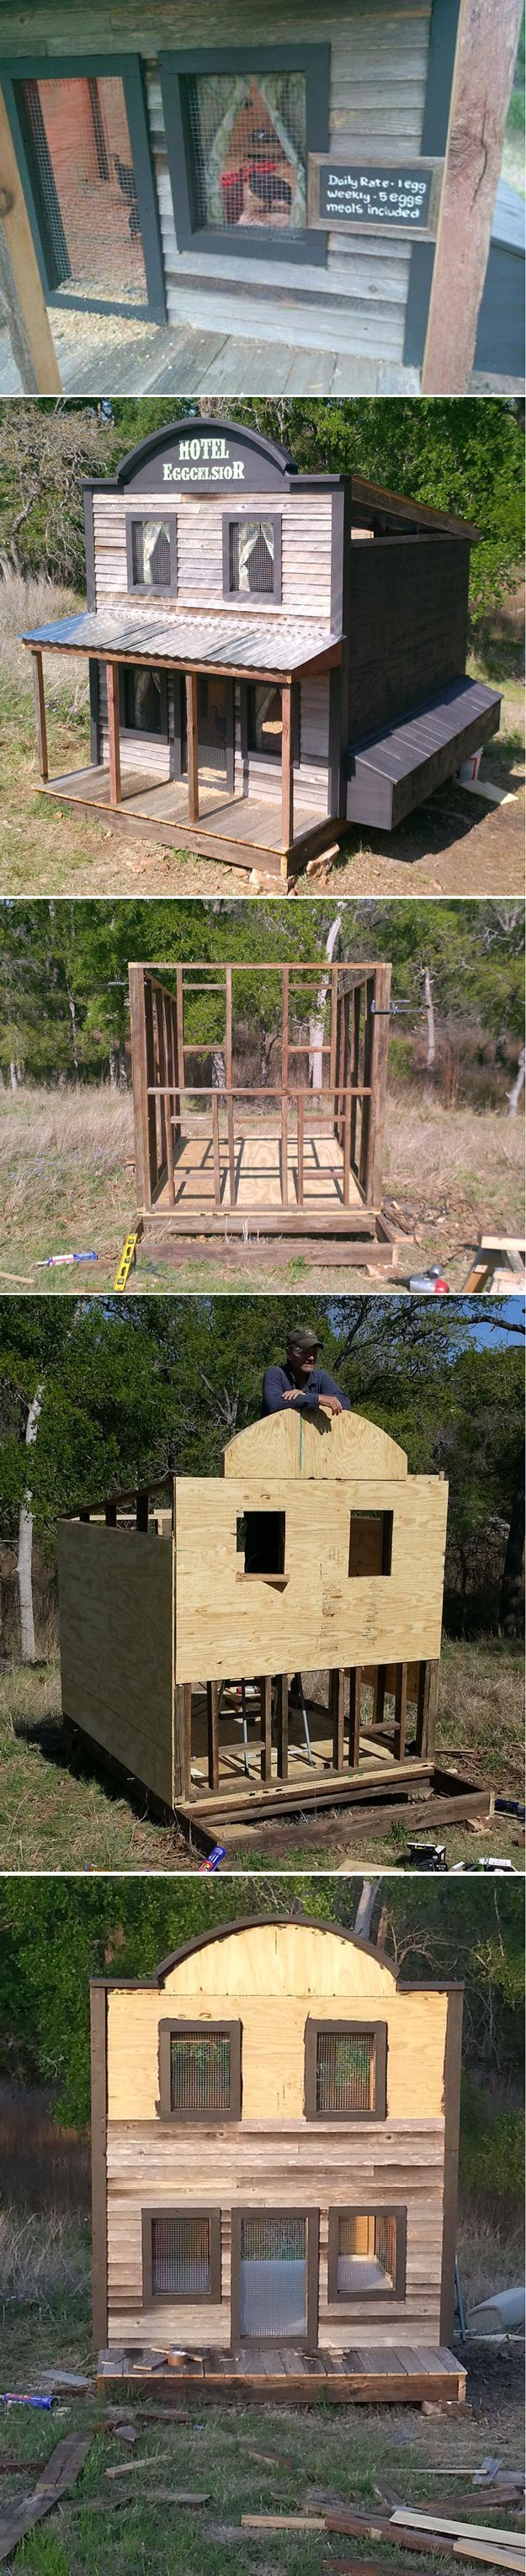 15 More Awesome Chicken Coop Designs and Ideas | How To Make A House For The Chickens by Pioneer Settler at http://pioneersettler.com/15-awesome-chicken-coop-ideas-designs/